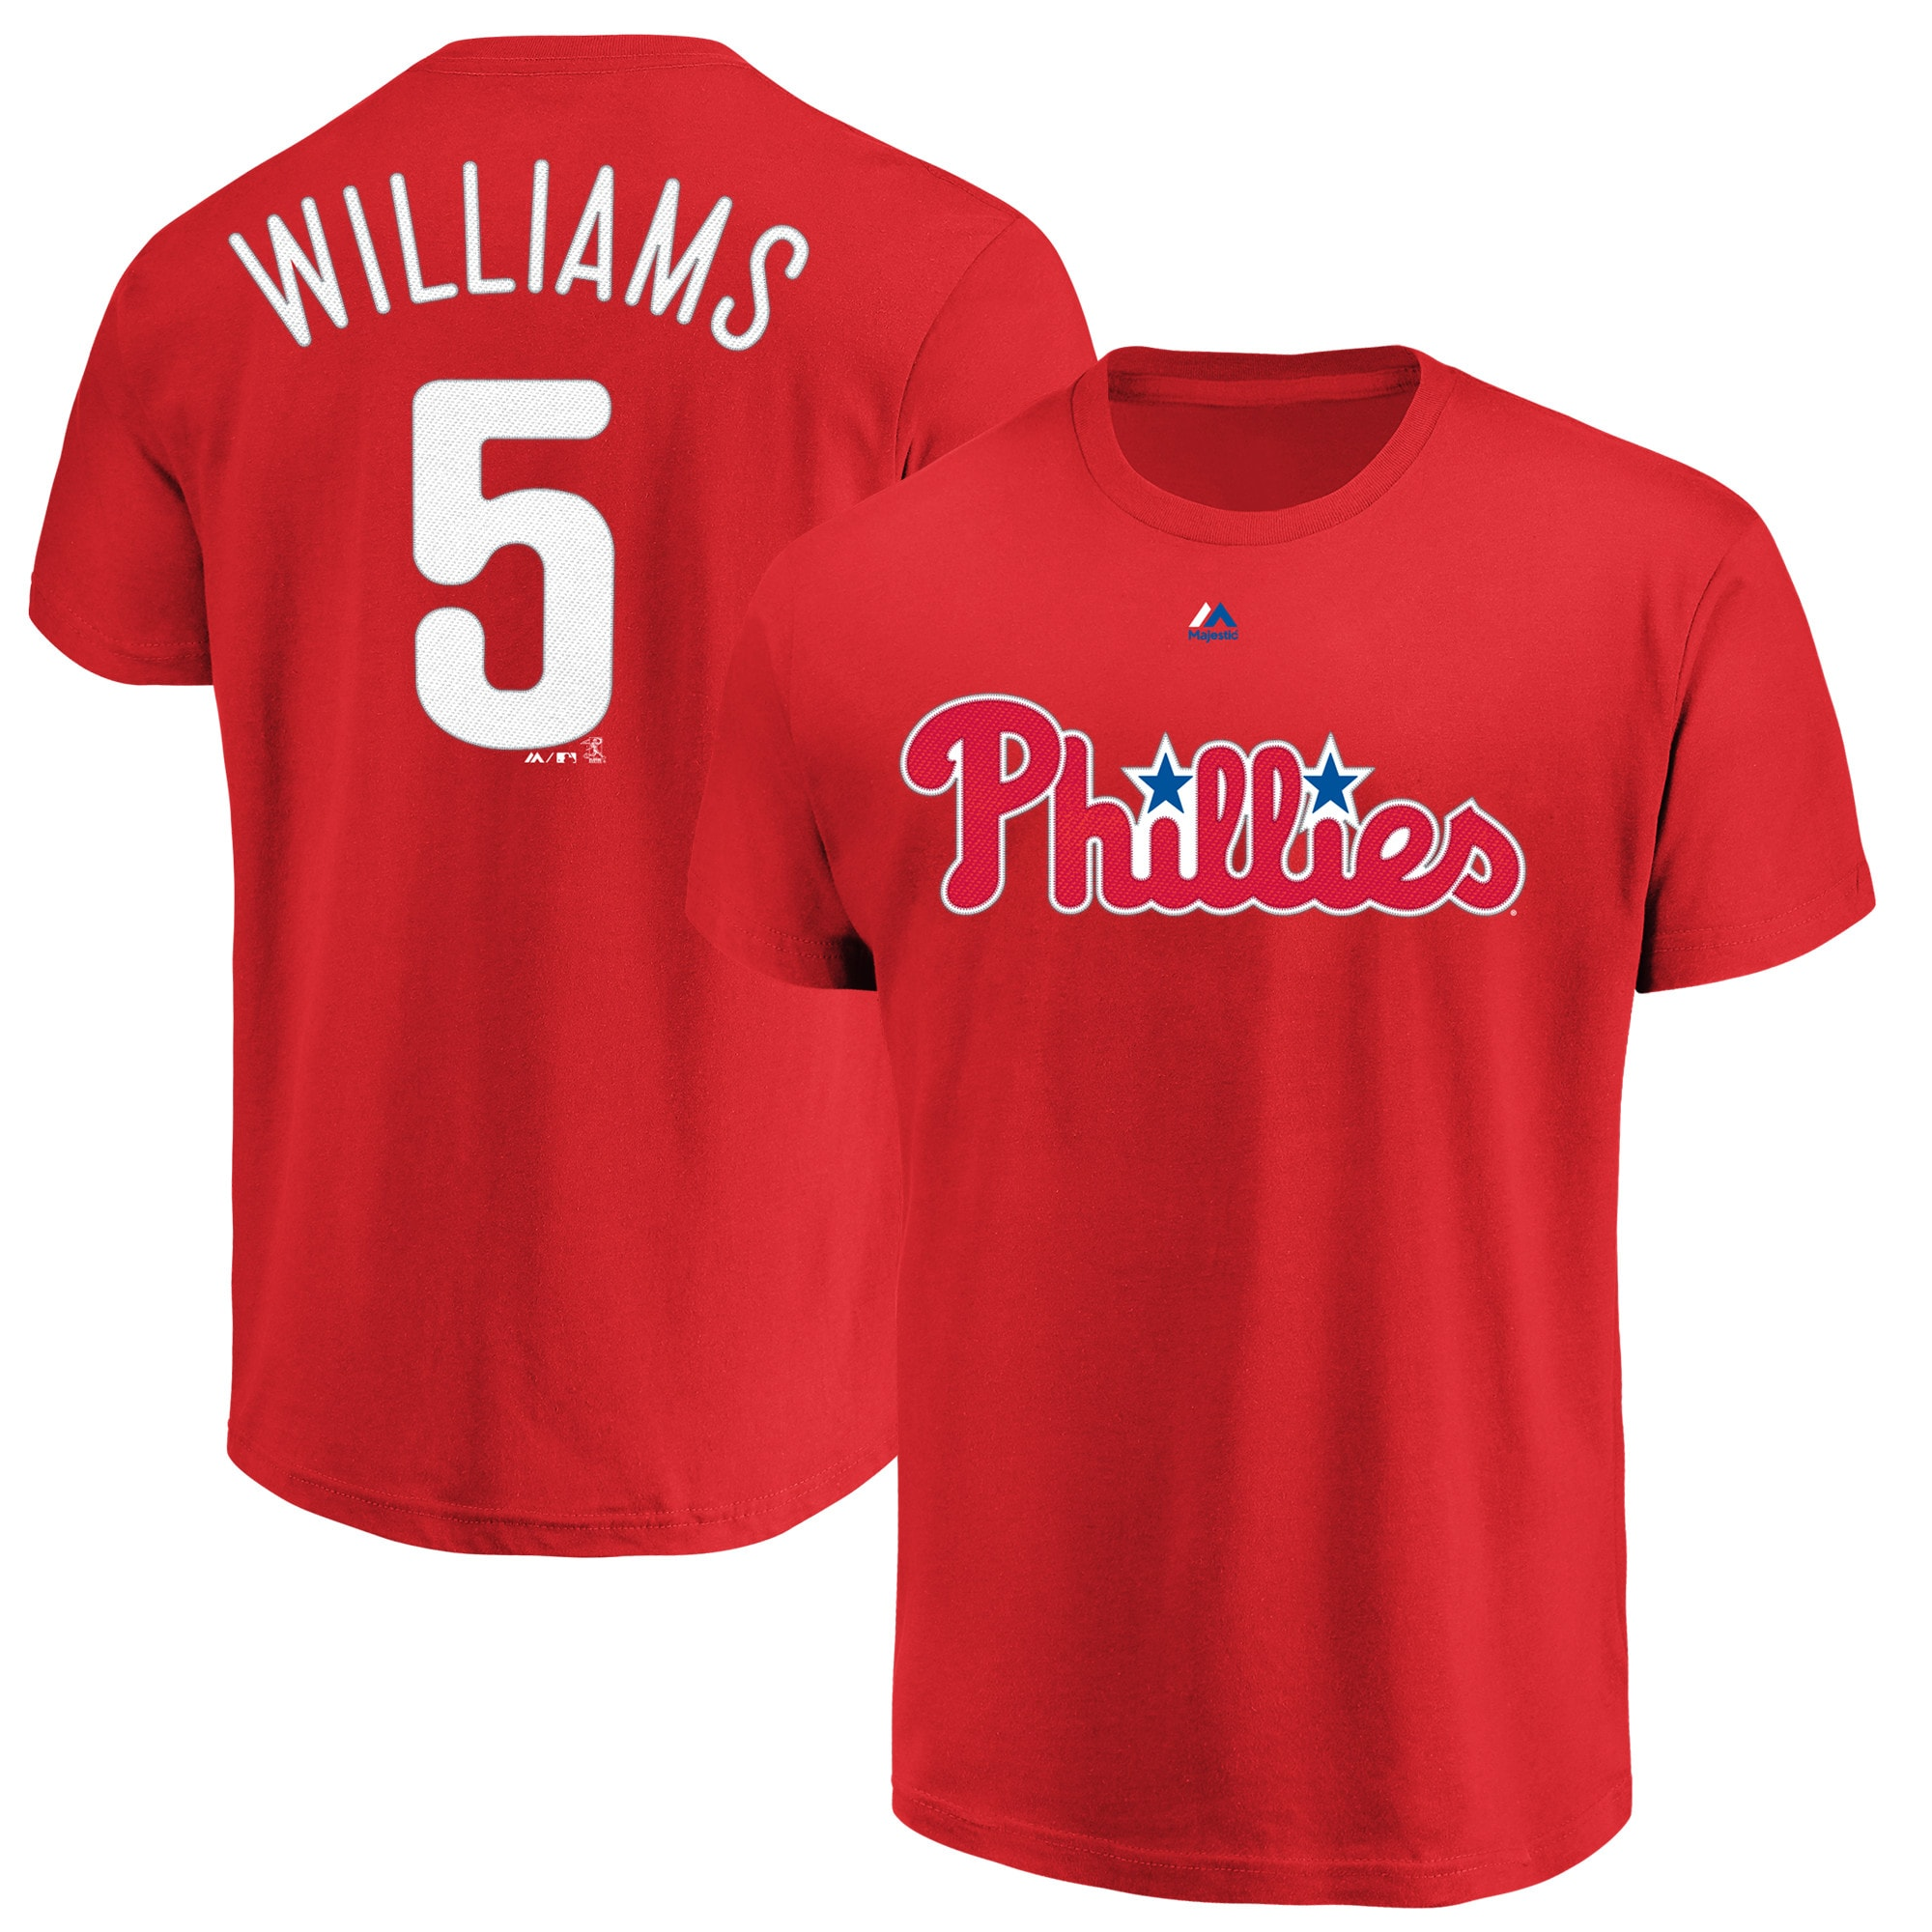 Nick Williams Philadelphia Phillies Majestic Official Name & Number T-Shirt - Red